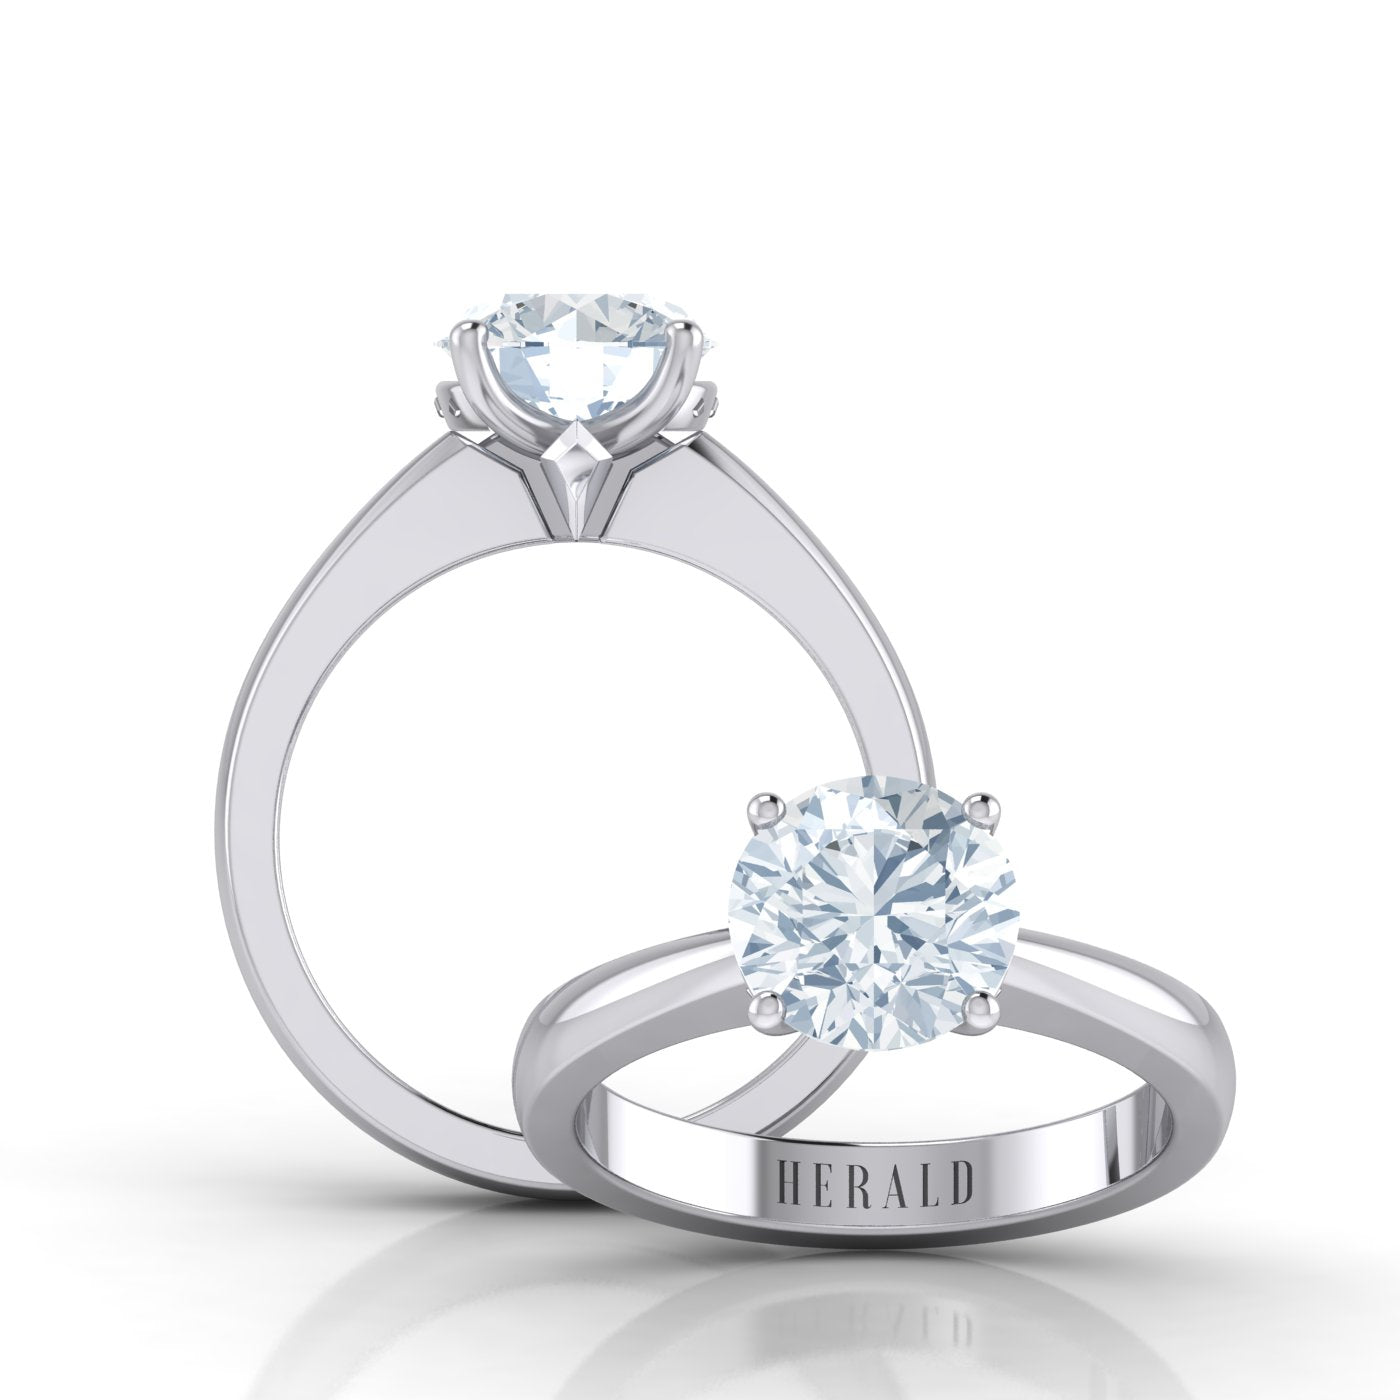 Alice Herald's 4 claw solitaire engagement ring in platinum